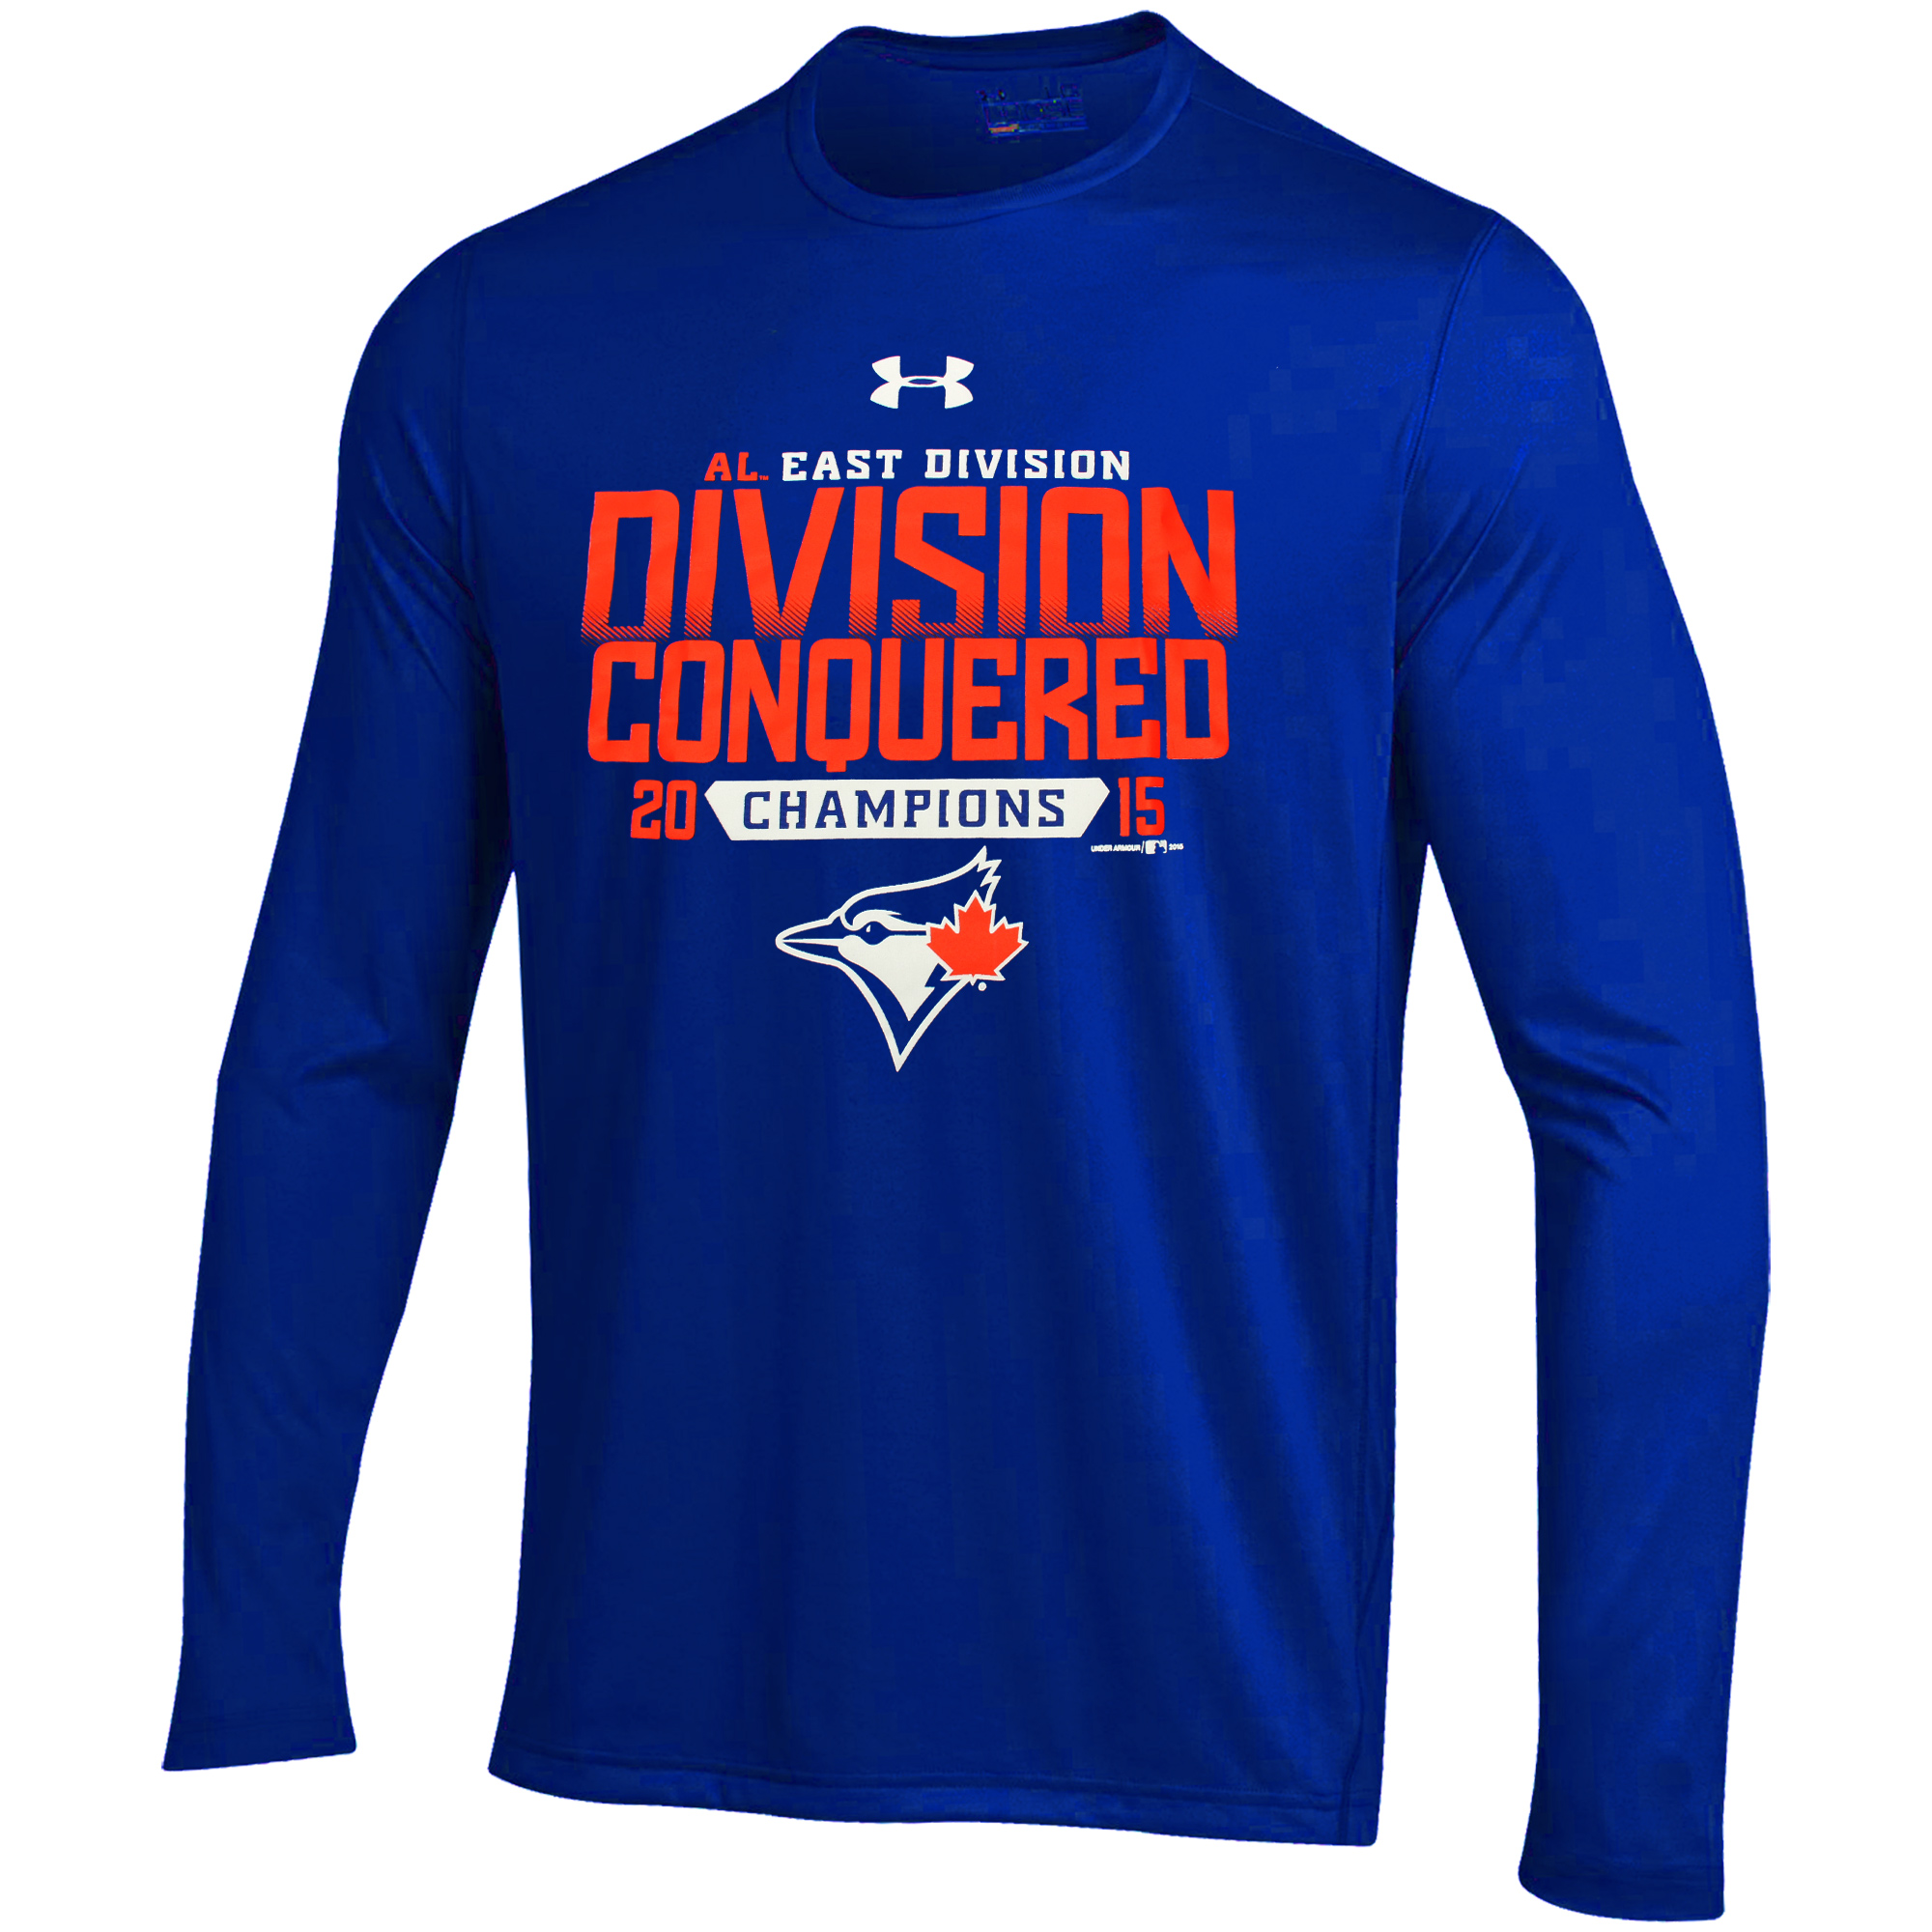 Toronto Blue Jays Under Armour Division Conquered Long Sleeve Performance T-Shirt - Royal